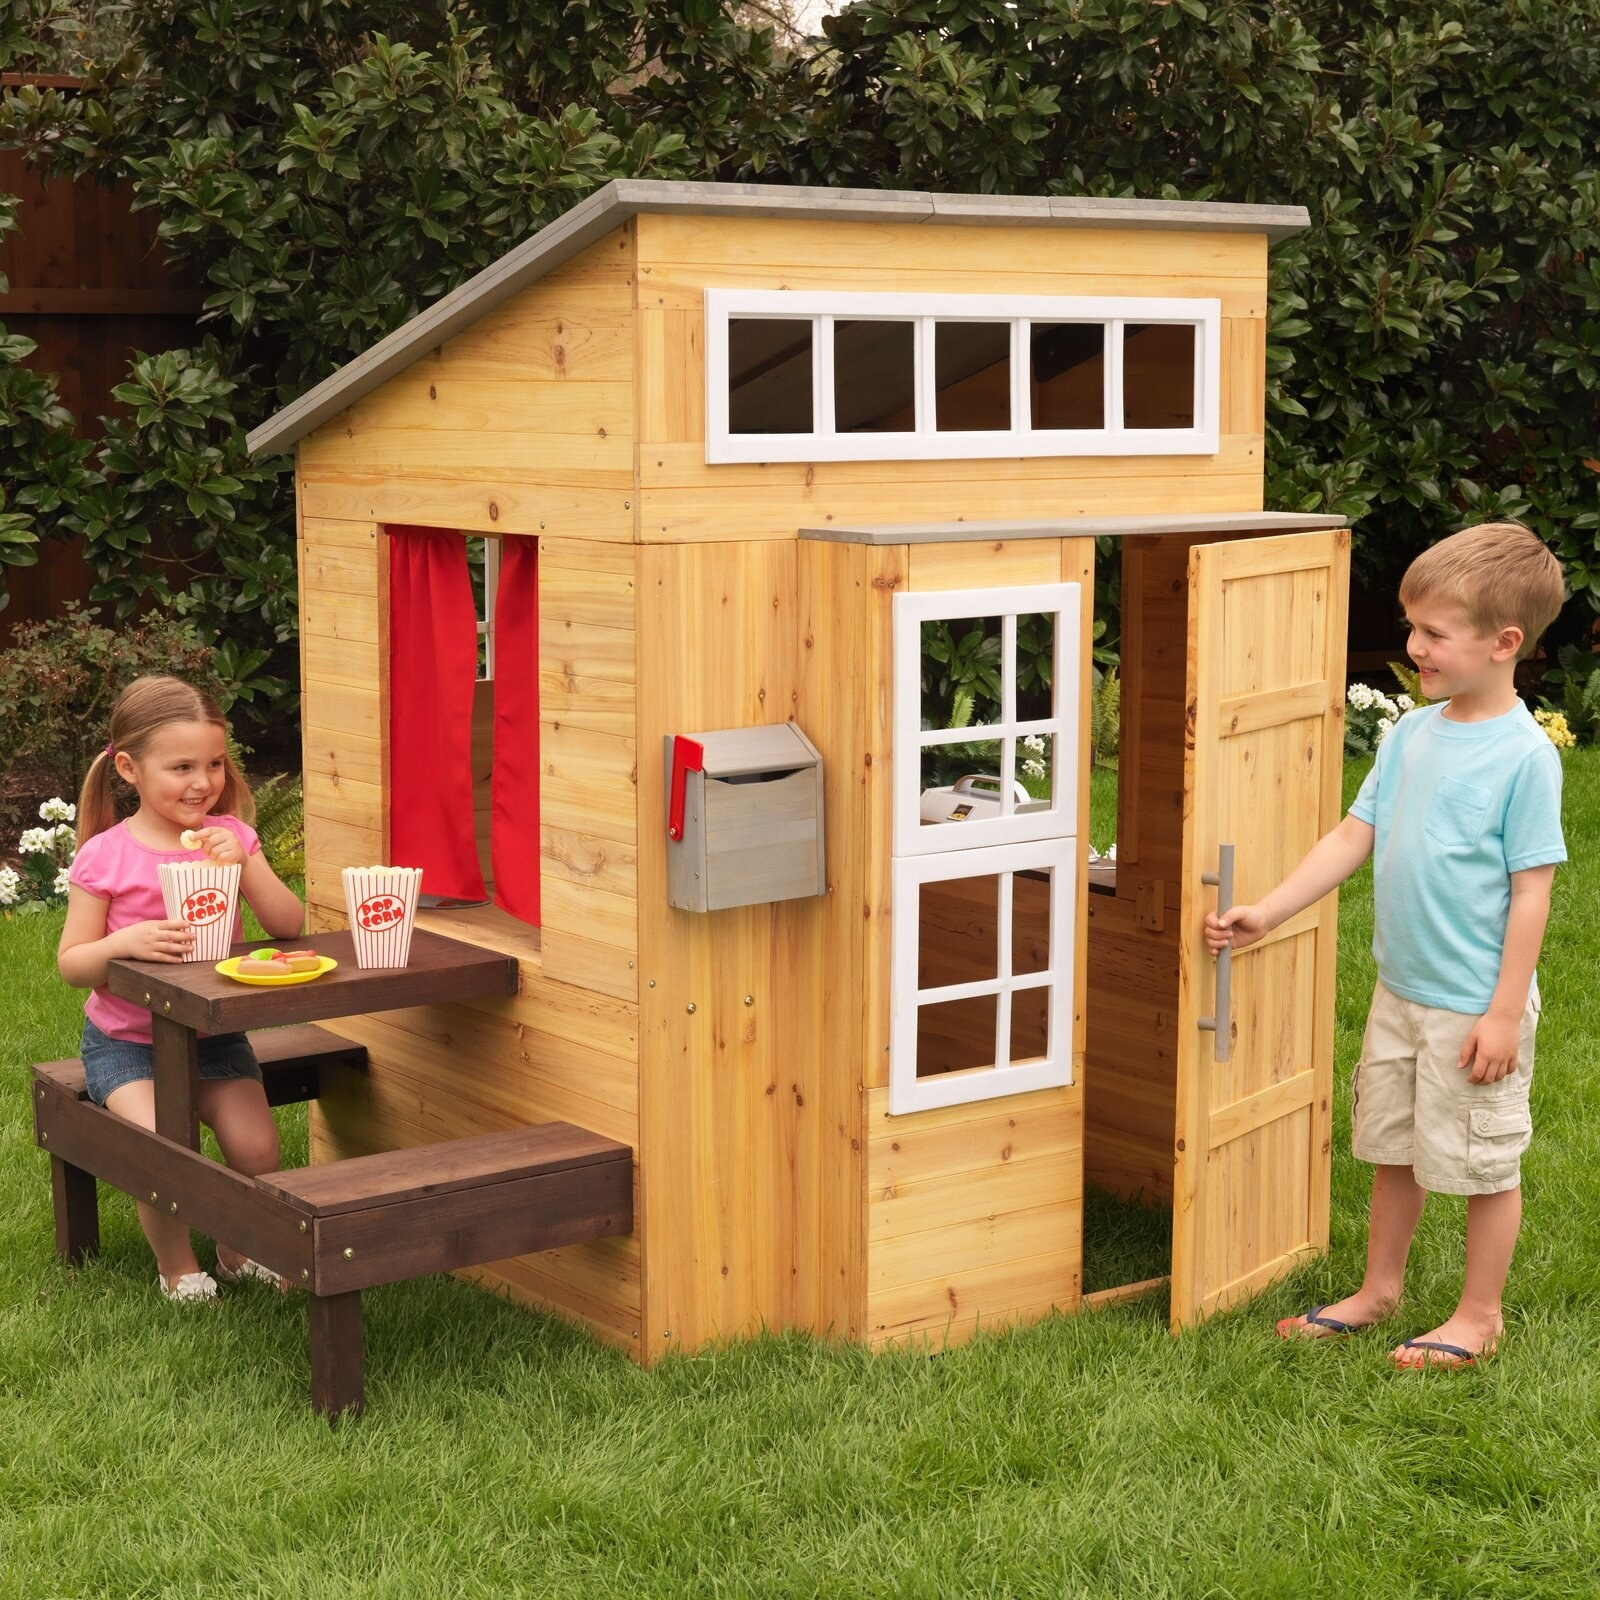 Children play with the house